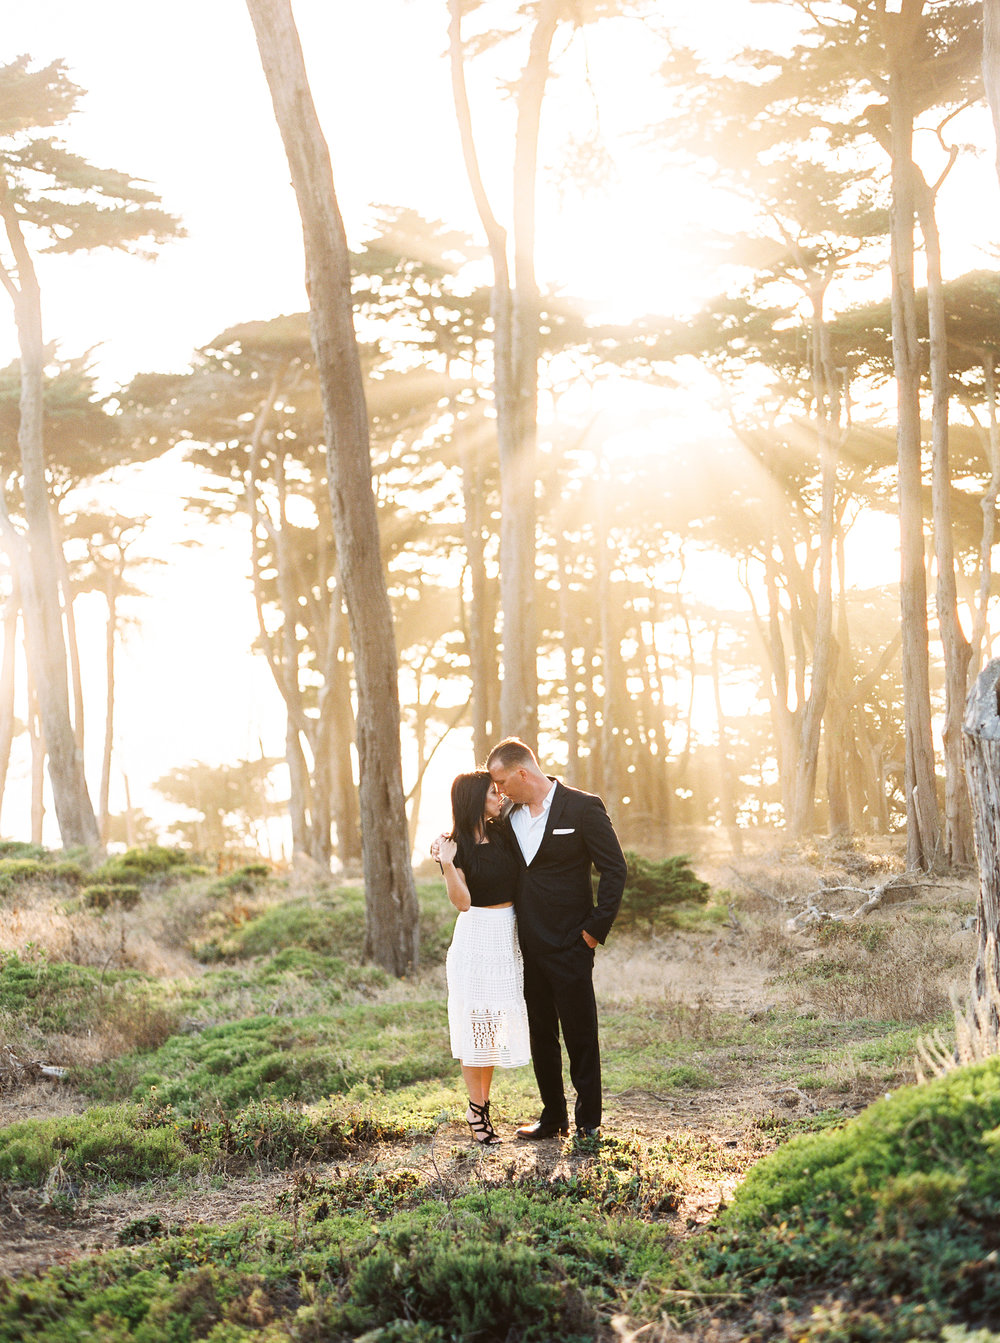 Suto-baths-engagement-photography-22.jpg